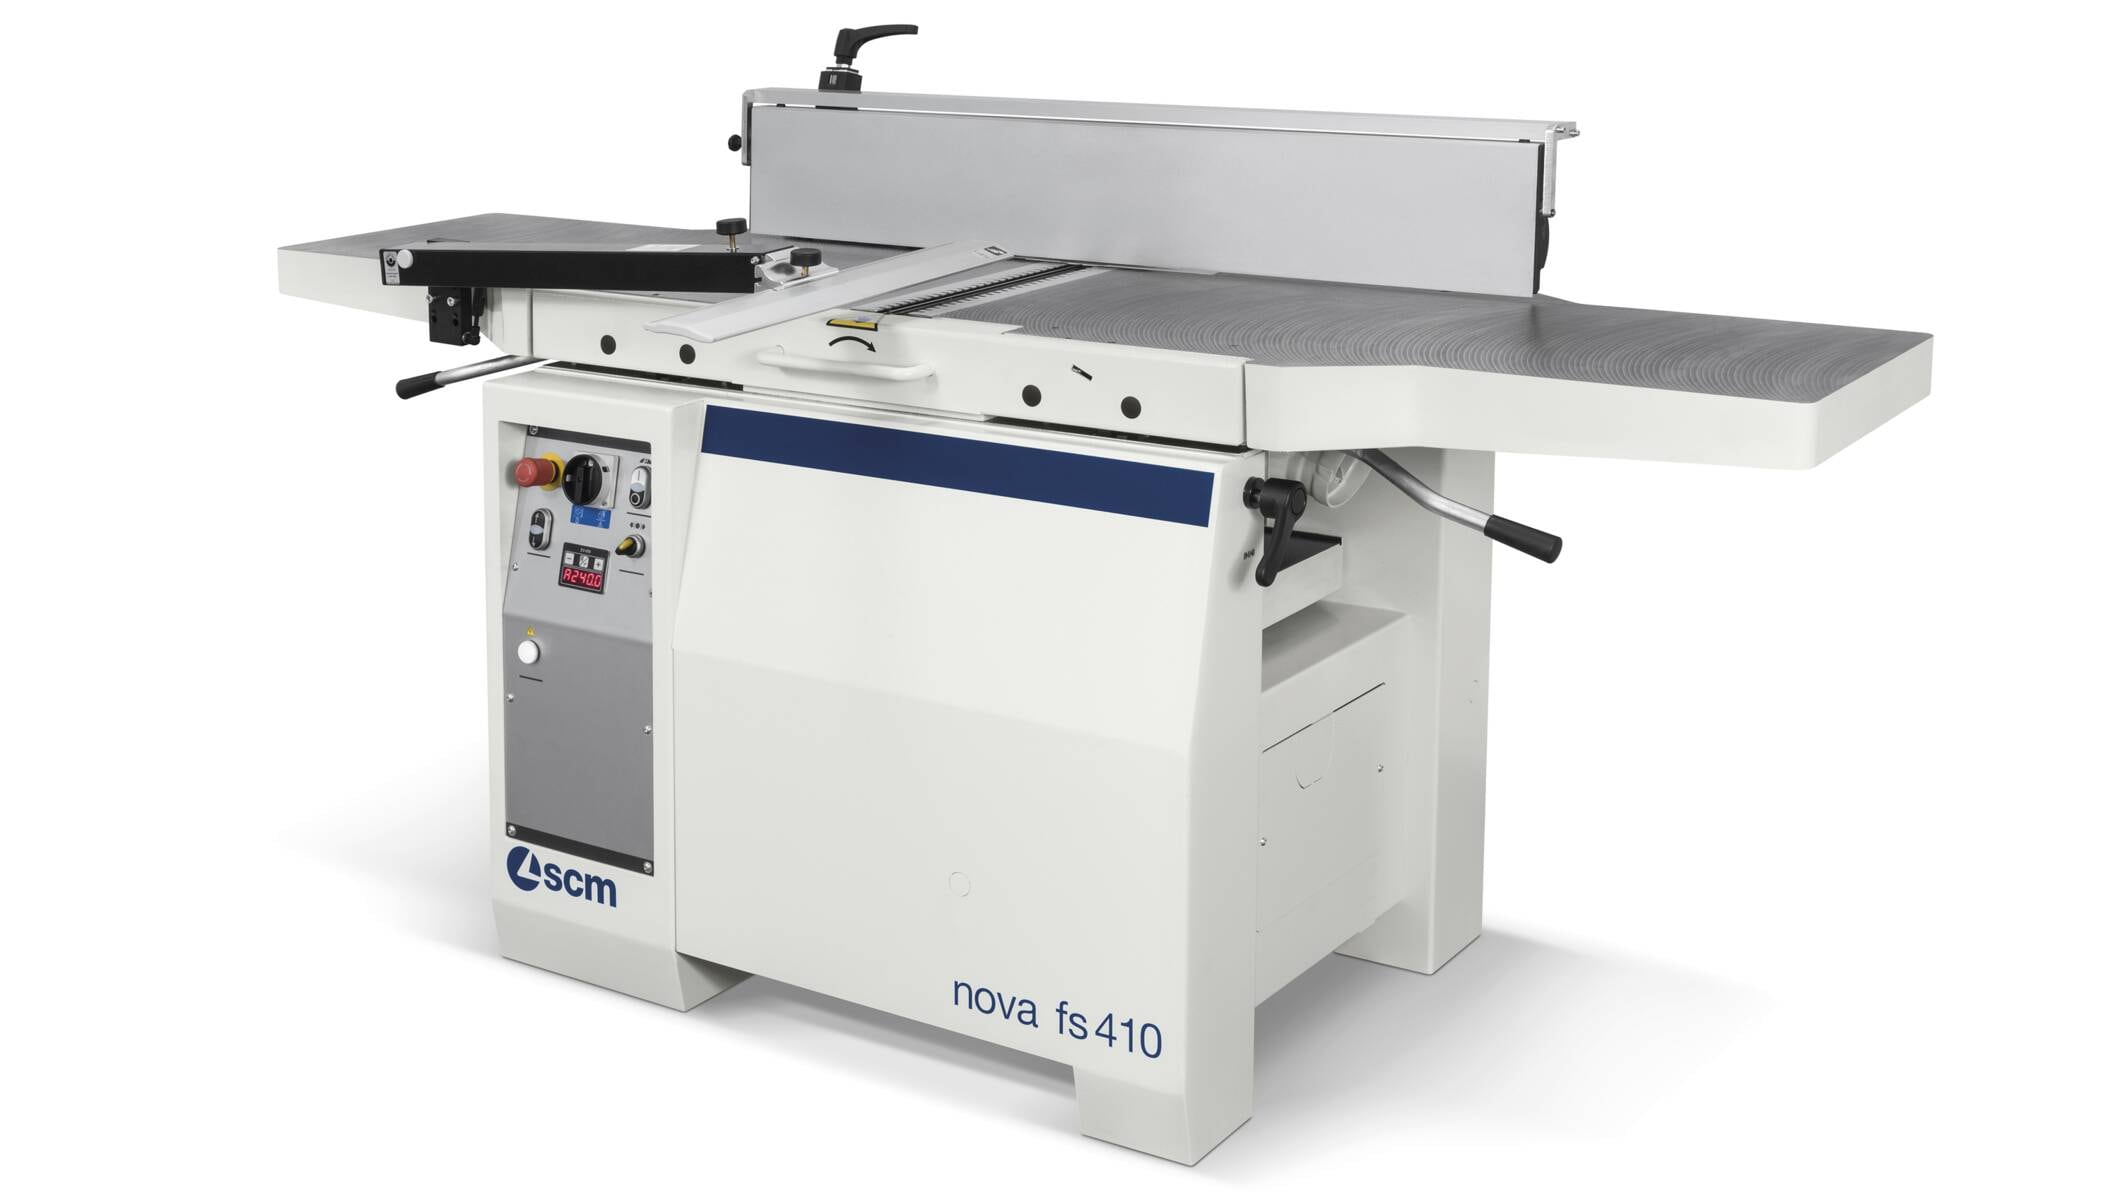 Joinery machines - Combined planer-thicknesser  - nova fs 410